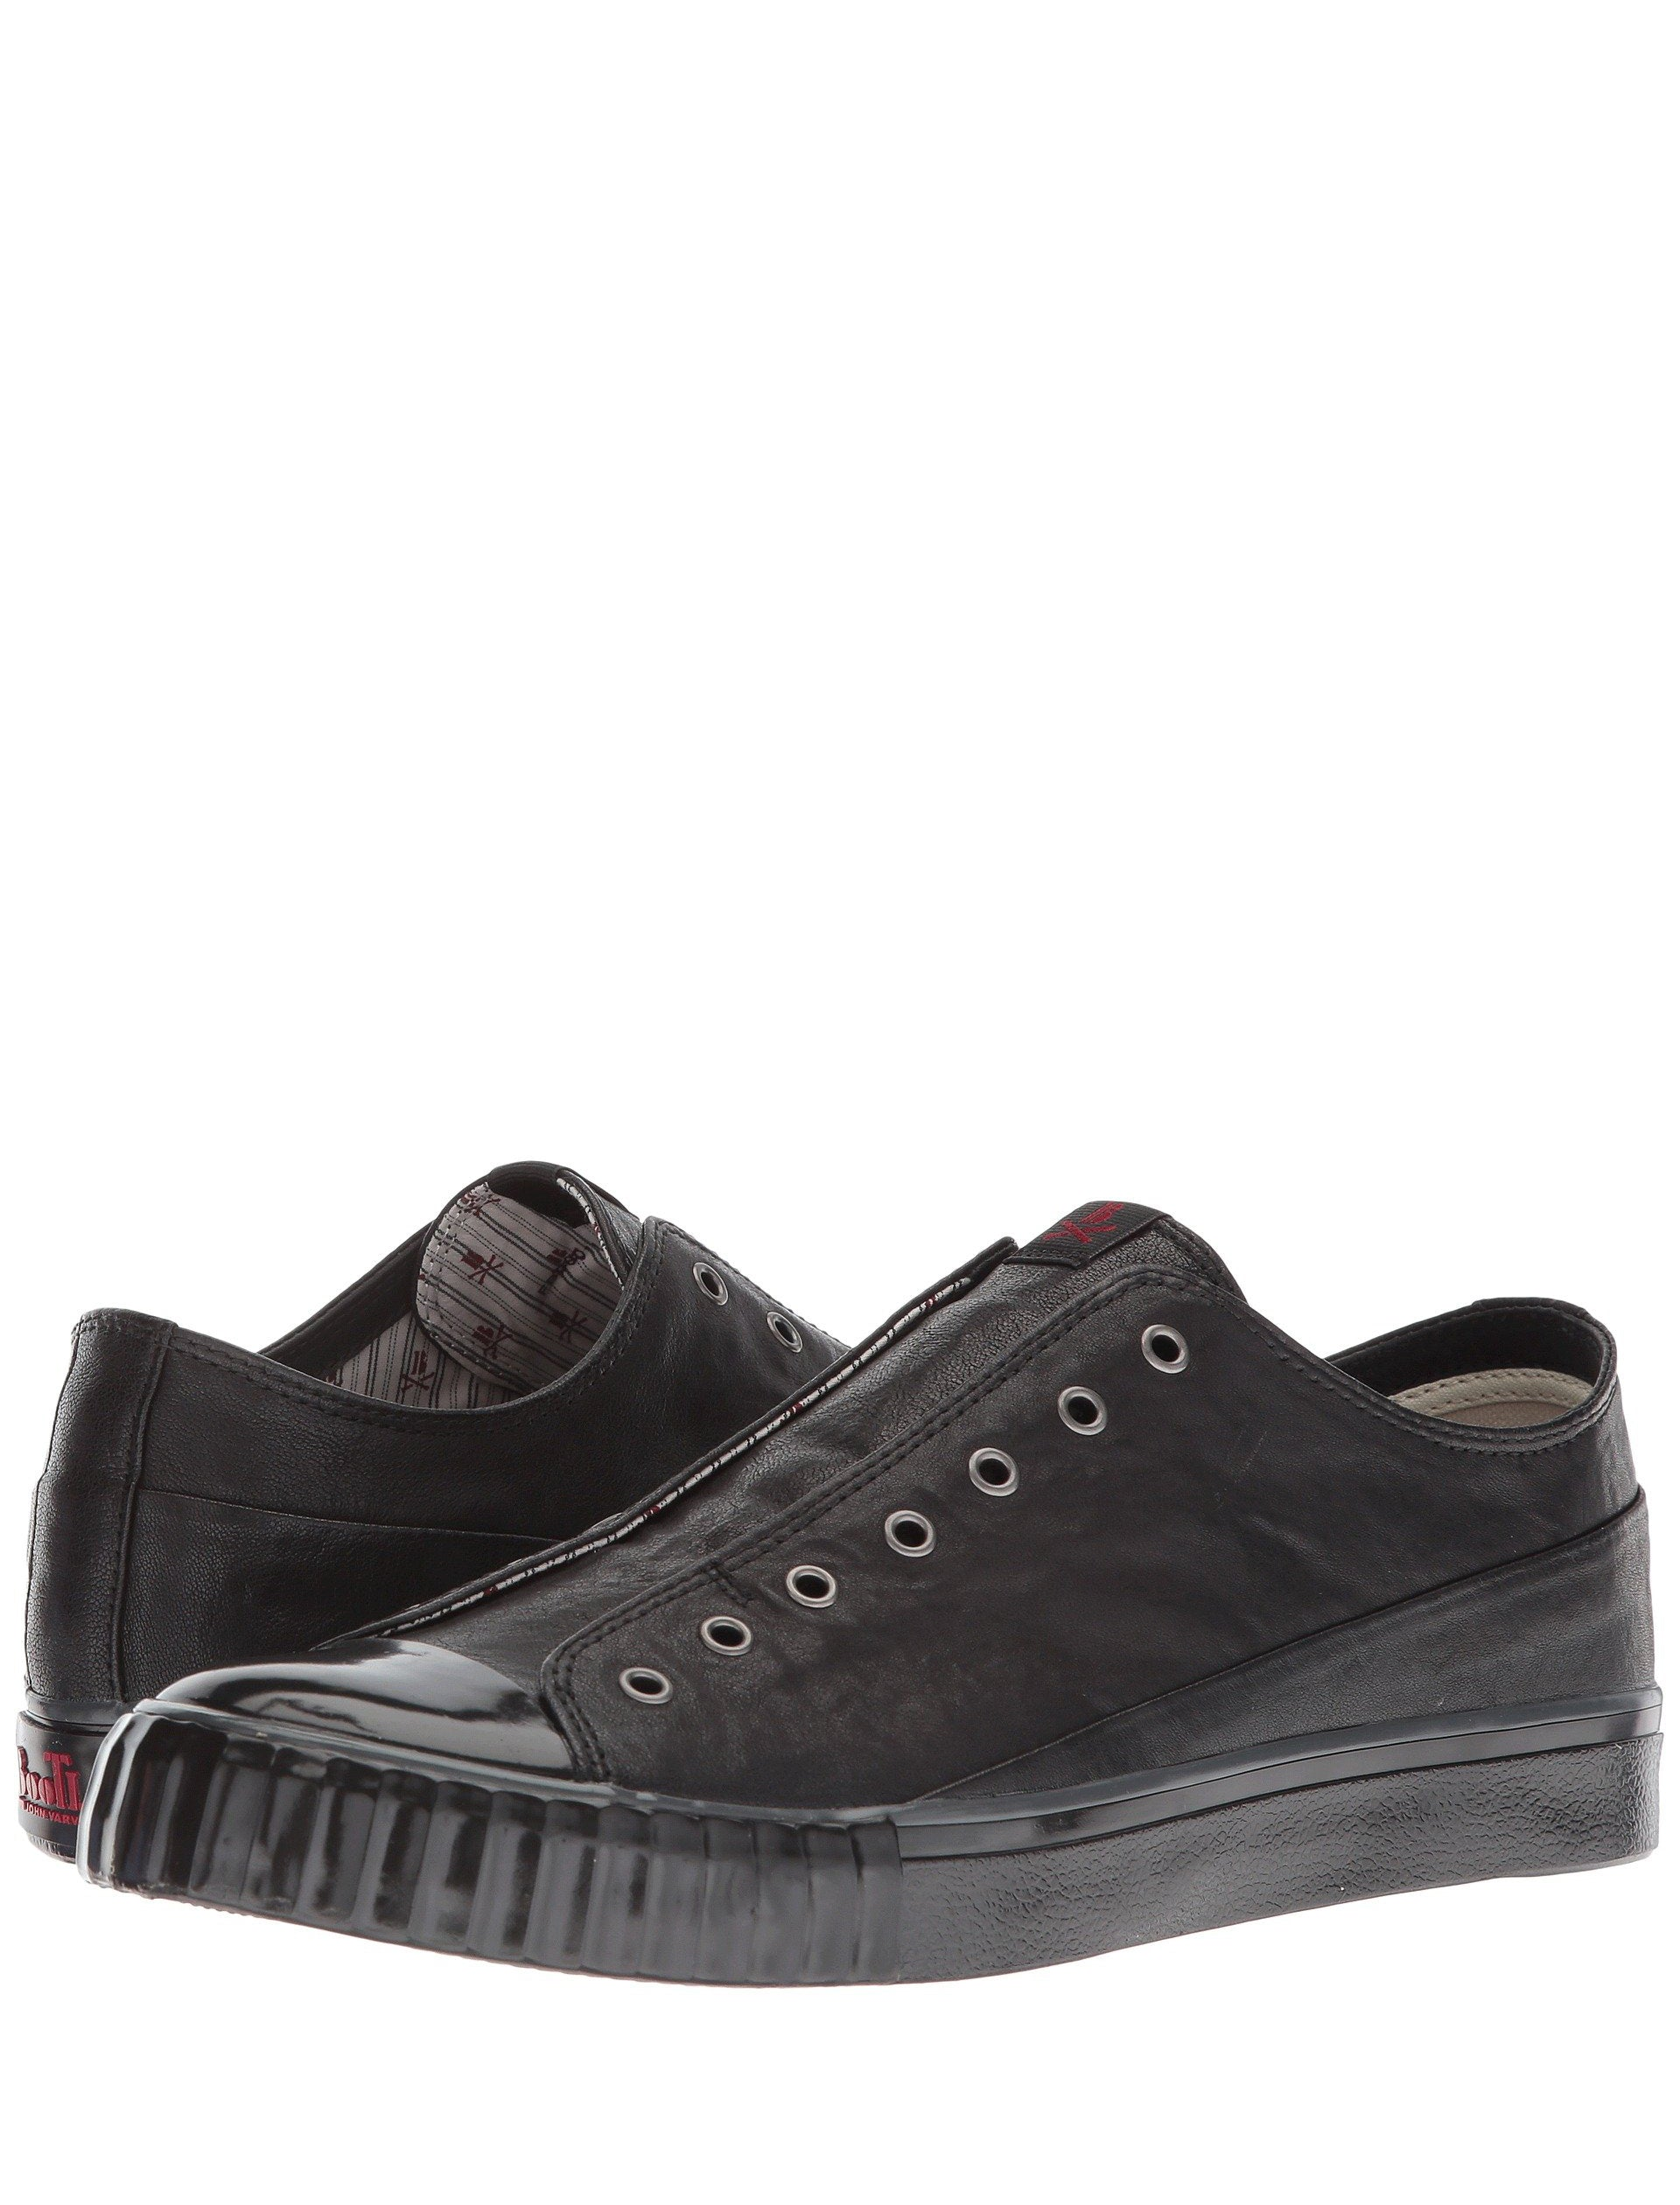 John Varvatos Laceless Low Top Sneaker FB0001U1